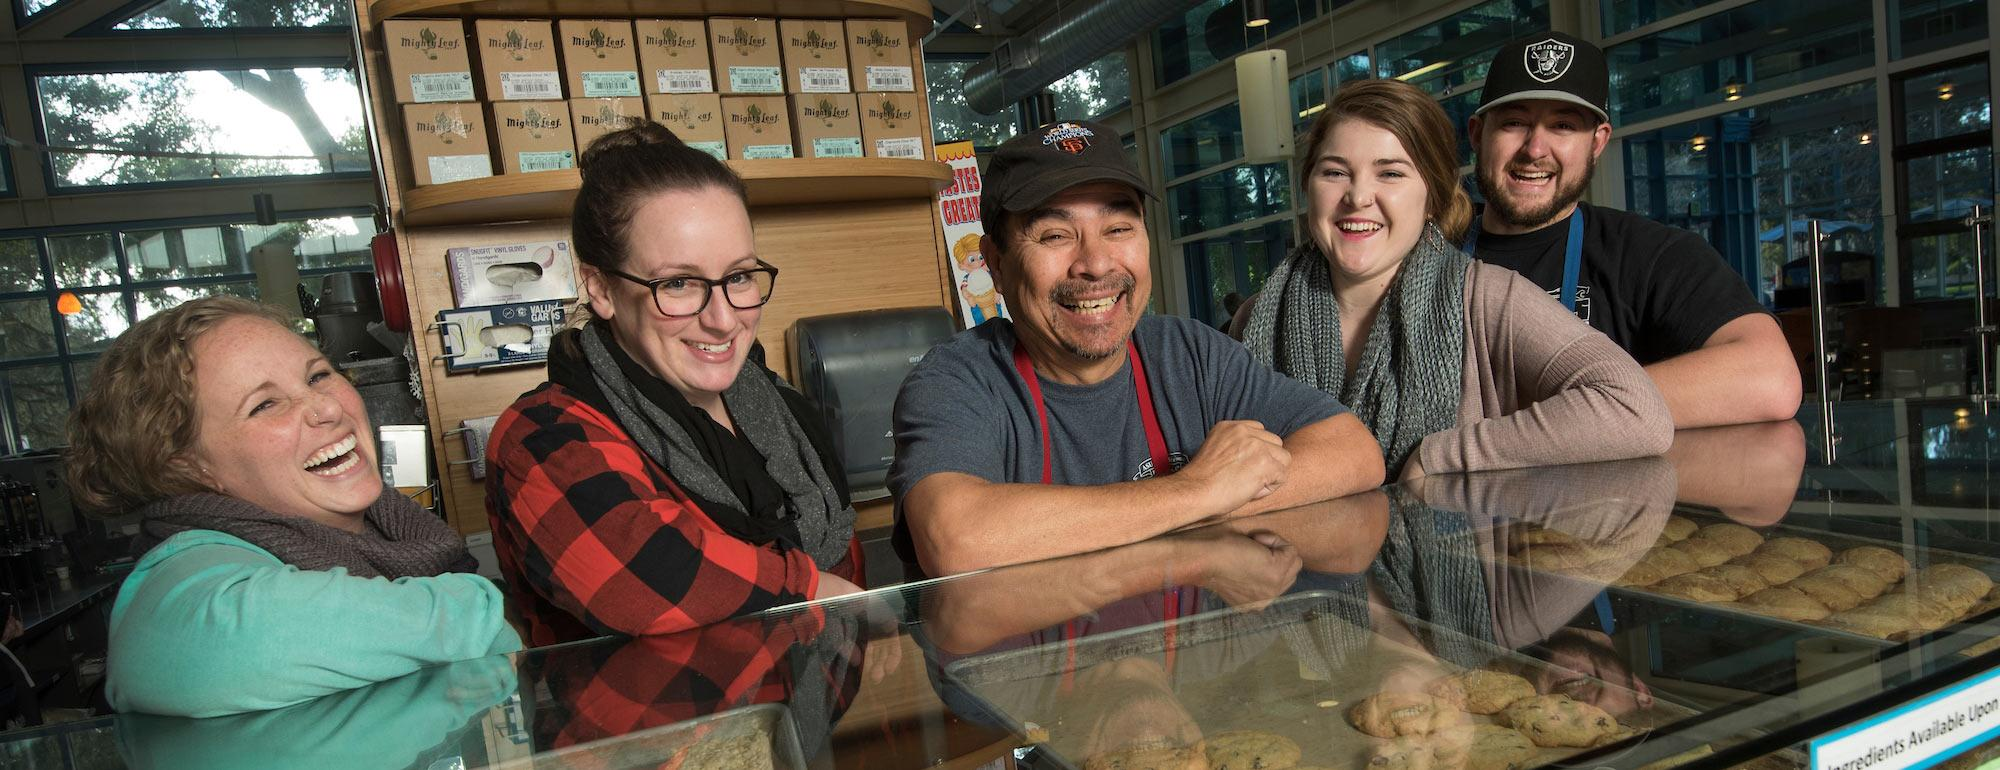 Student Coffee House workers smile with their manager over a counter filled with baked goods